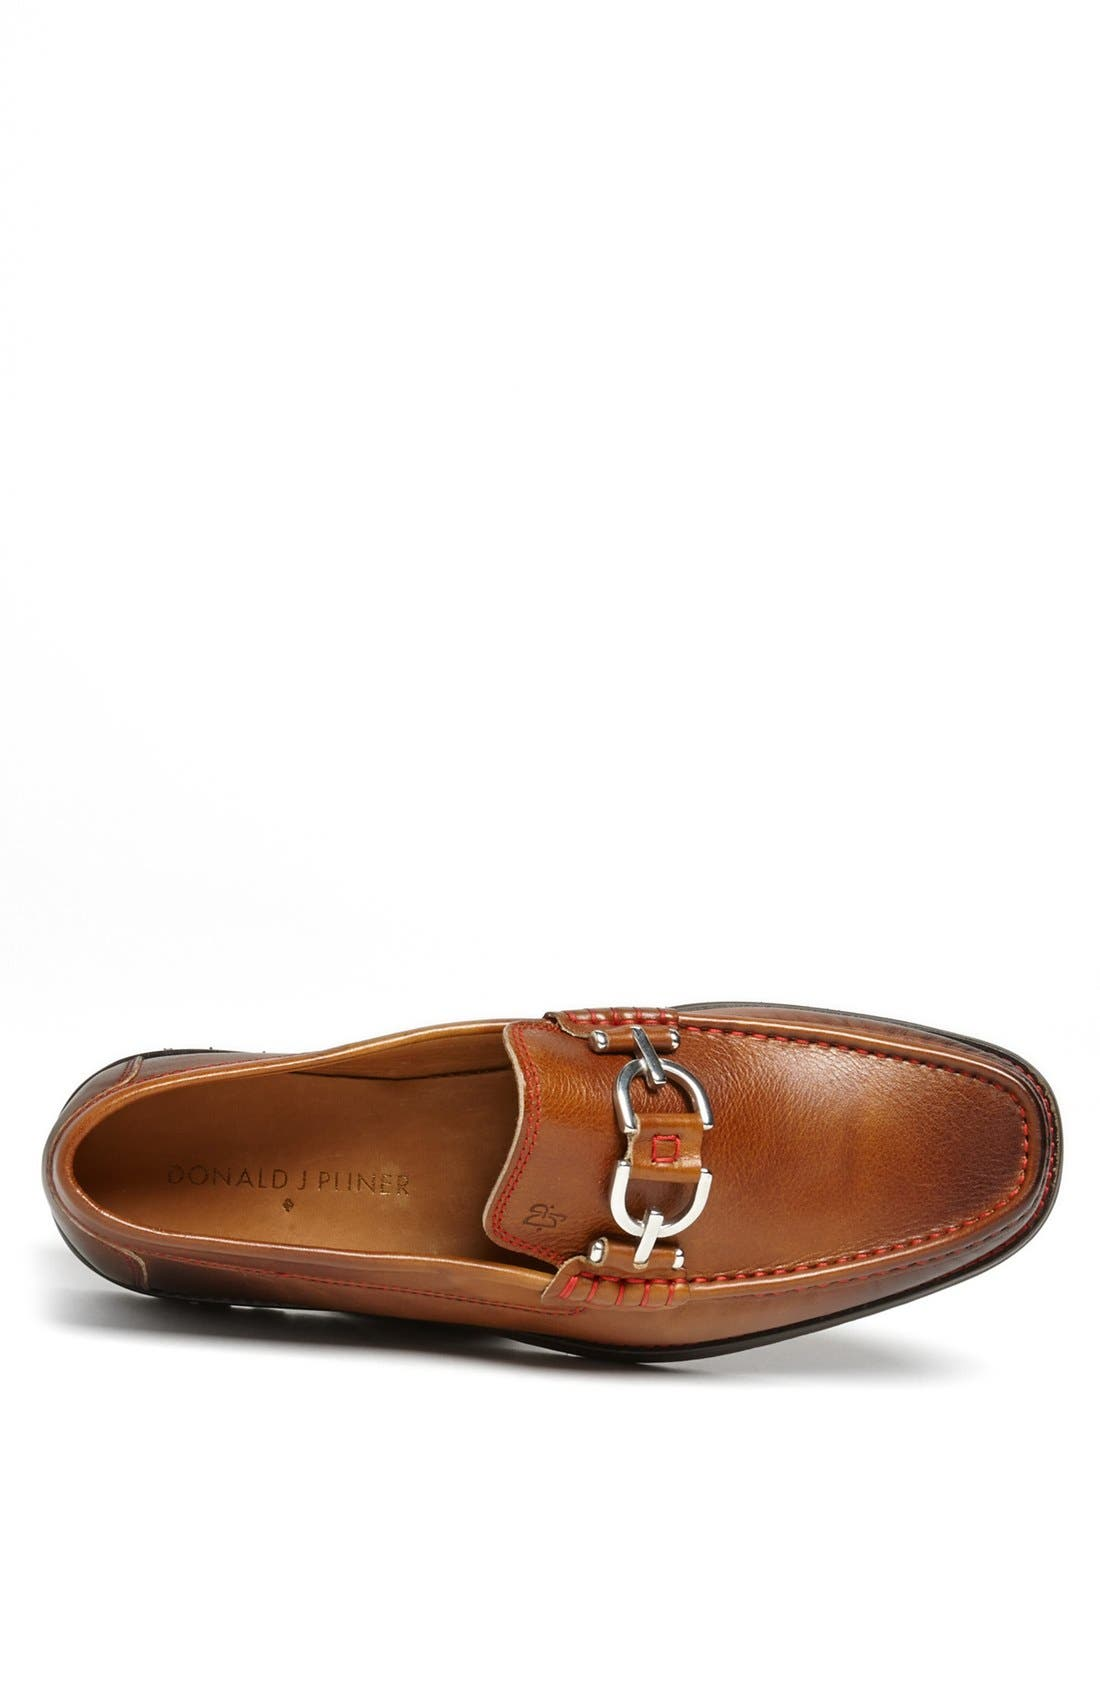 Alternate Image 3  - Donald J Pliner 'Dustee' Bit Loafer